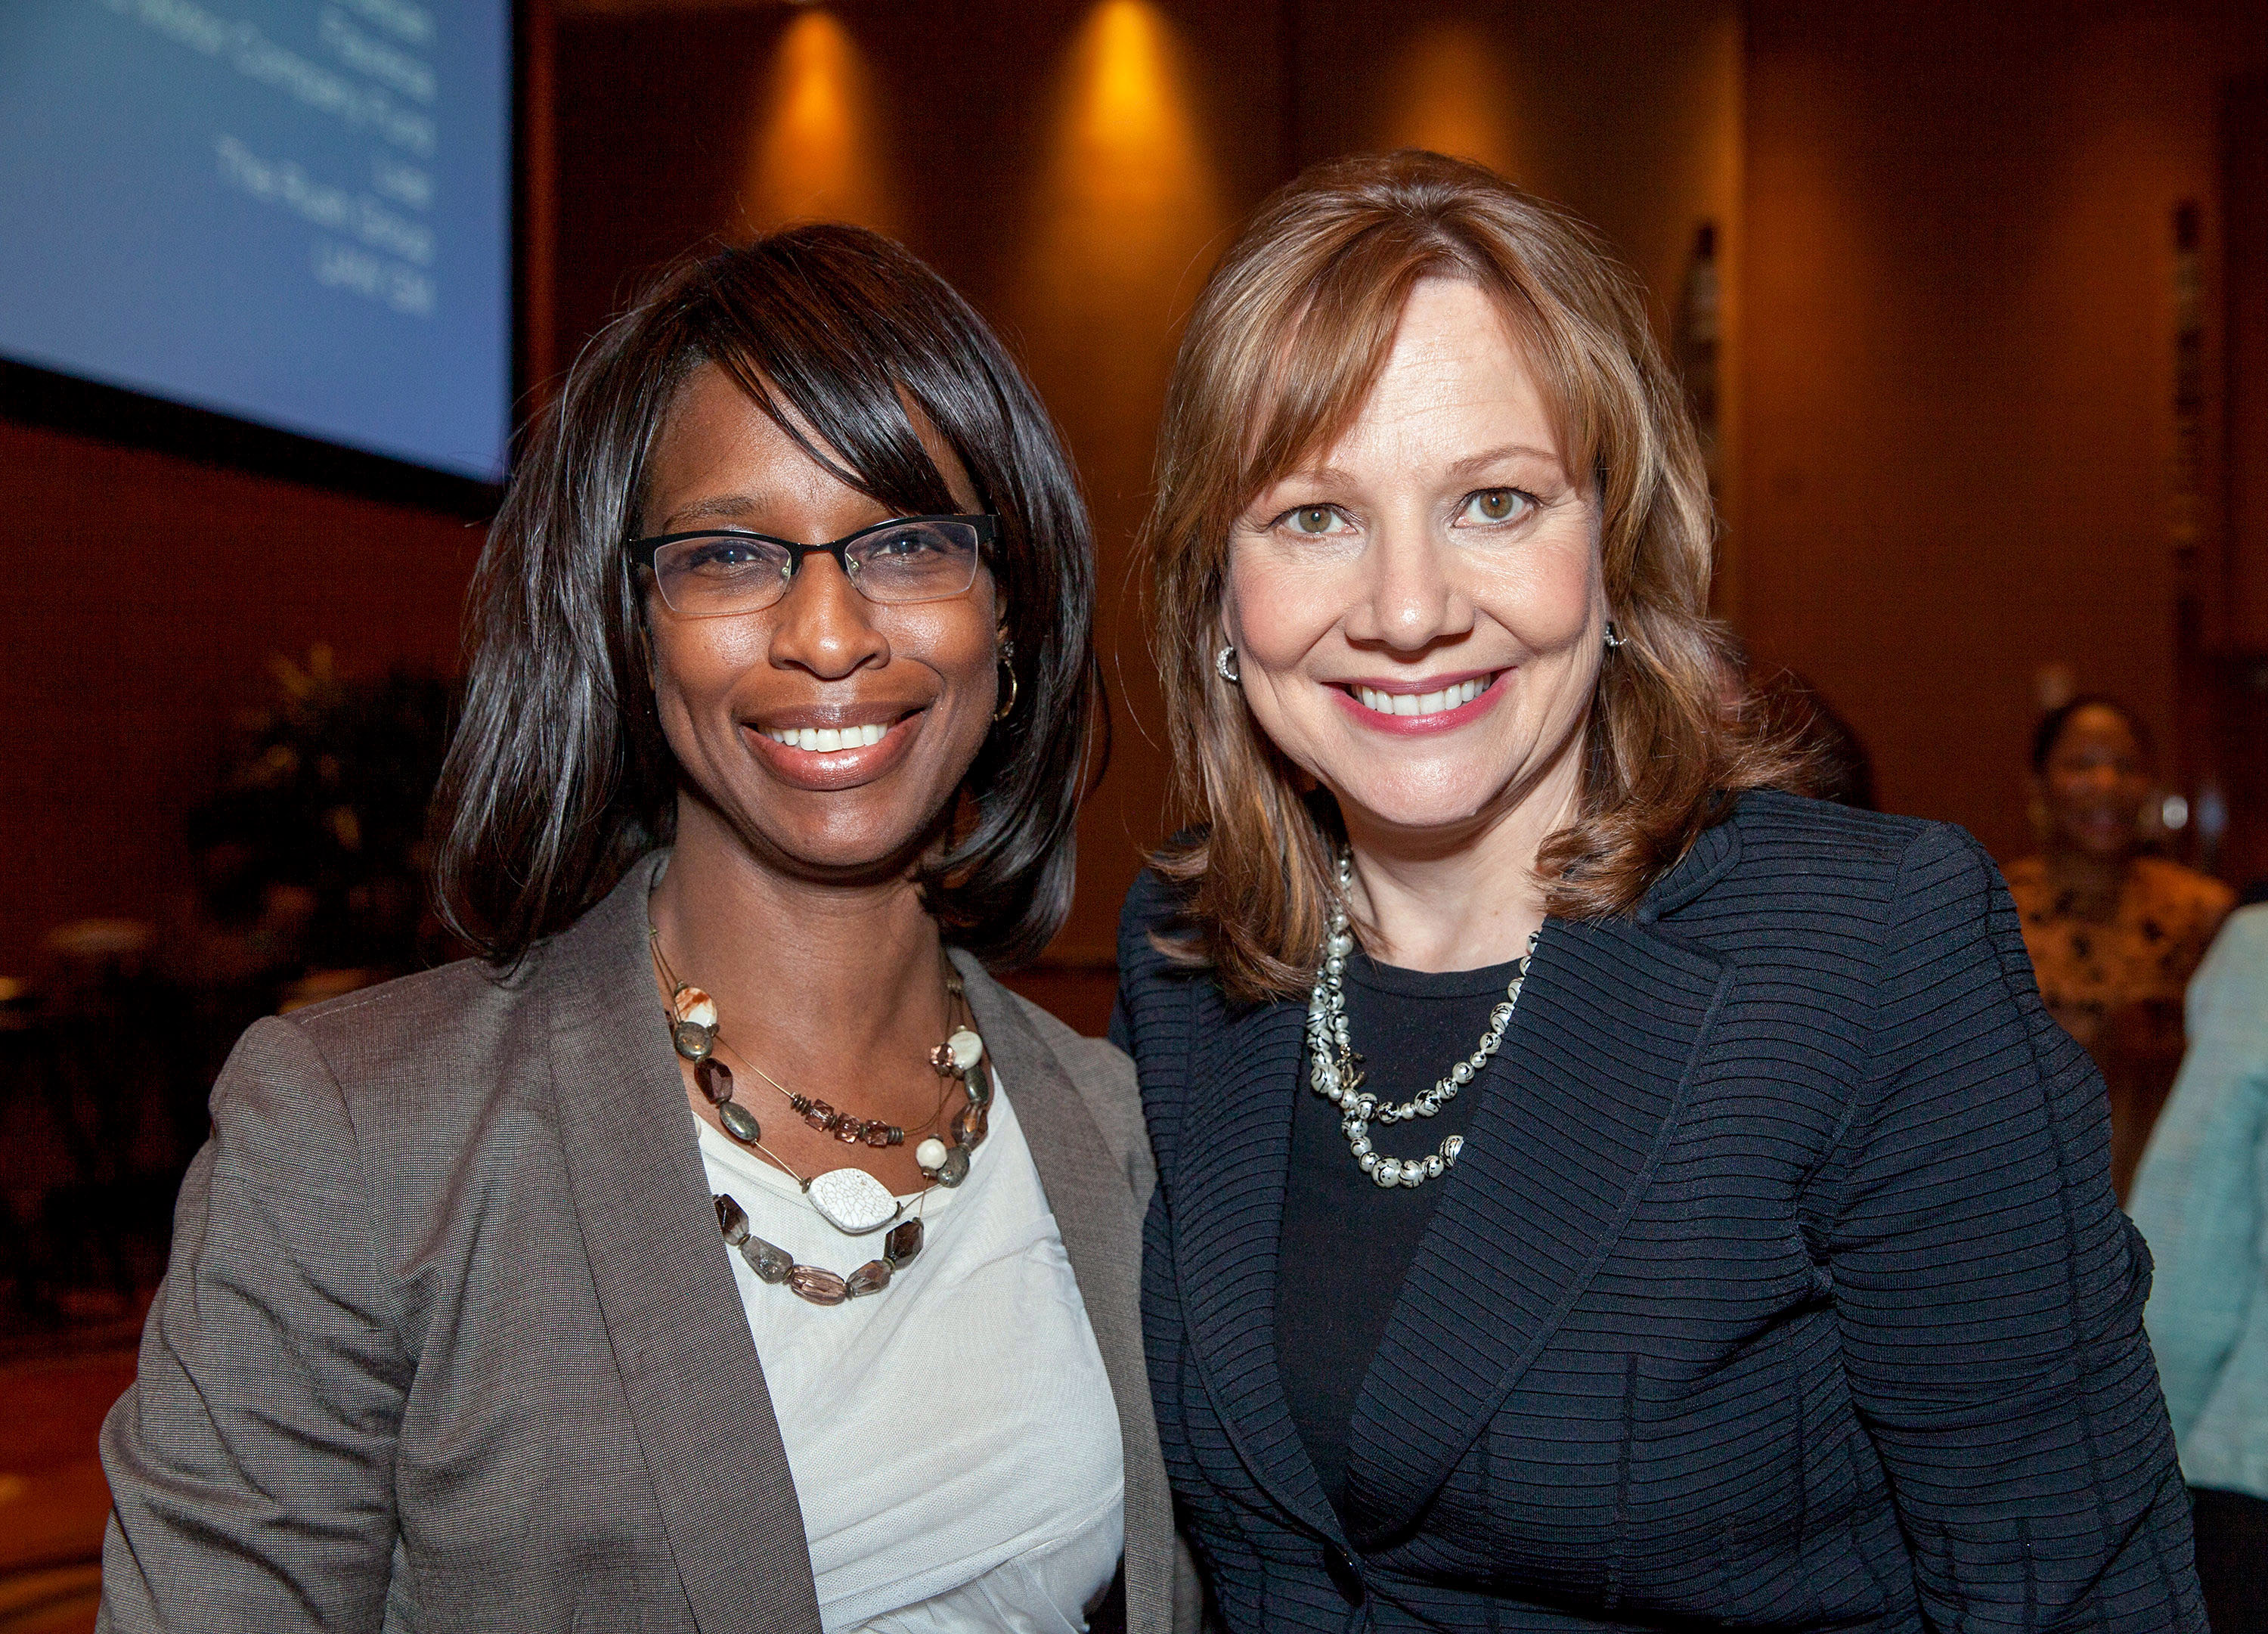 Gm Named One Of The 2015 Top Companies For Executive Women 3bl Media